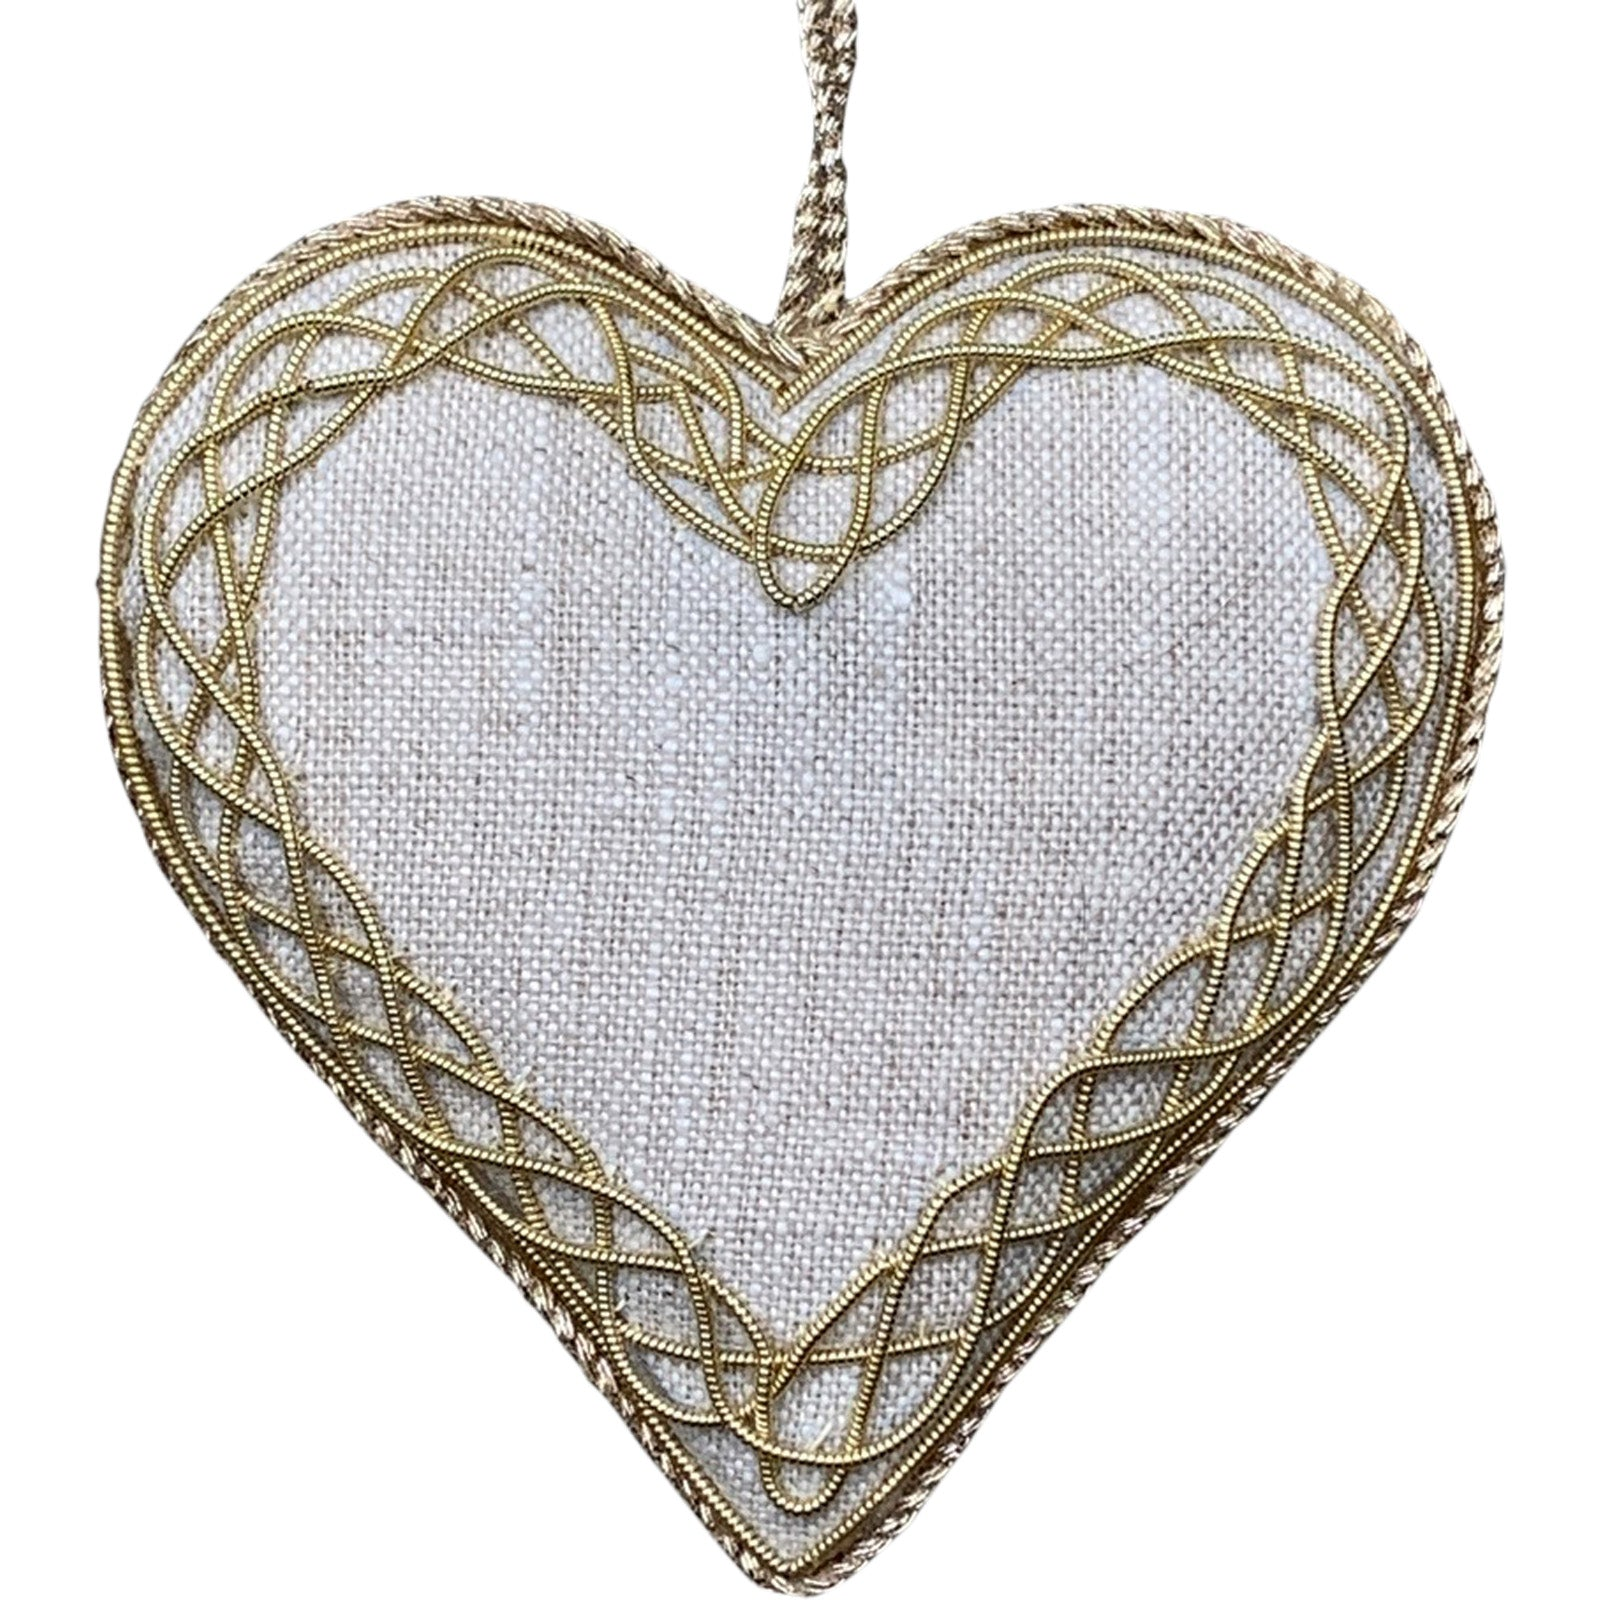 Linen Heart Decoration by LuxDeco - Christmas tree decoration - LuxDeco.com